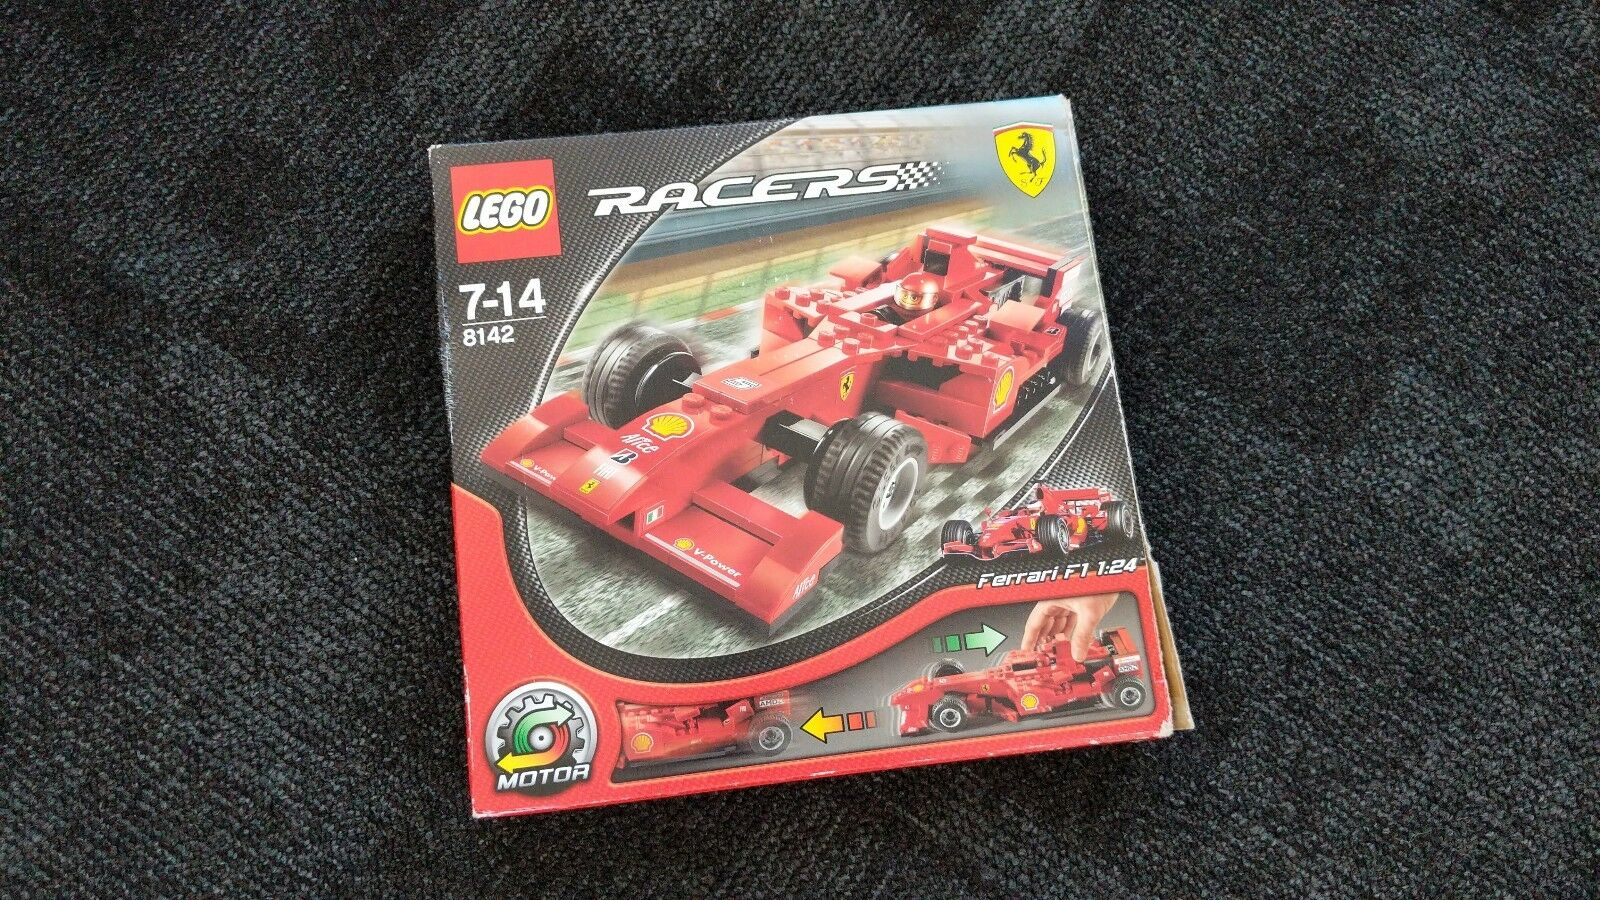 Lego 8142 Racers Ferrari F1 1 24 Boxed with Instructions